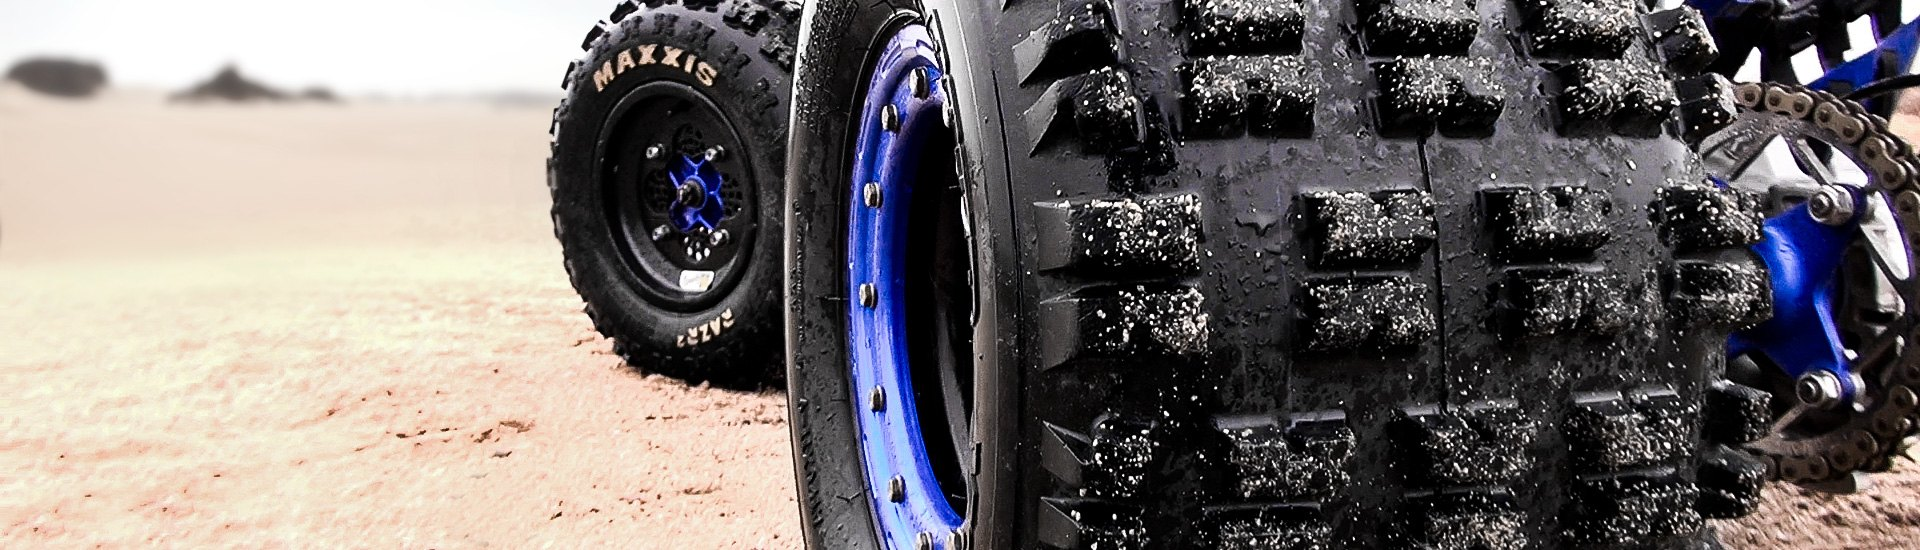 Powersports Motorcycle Tires